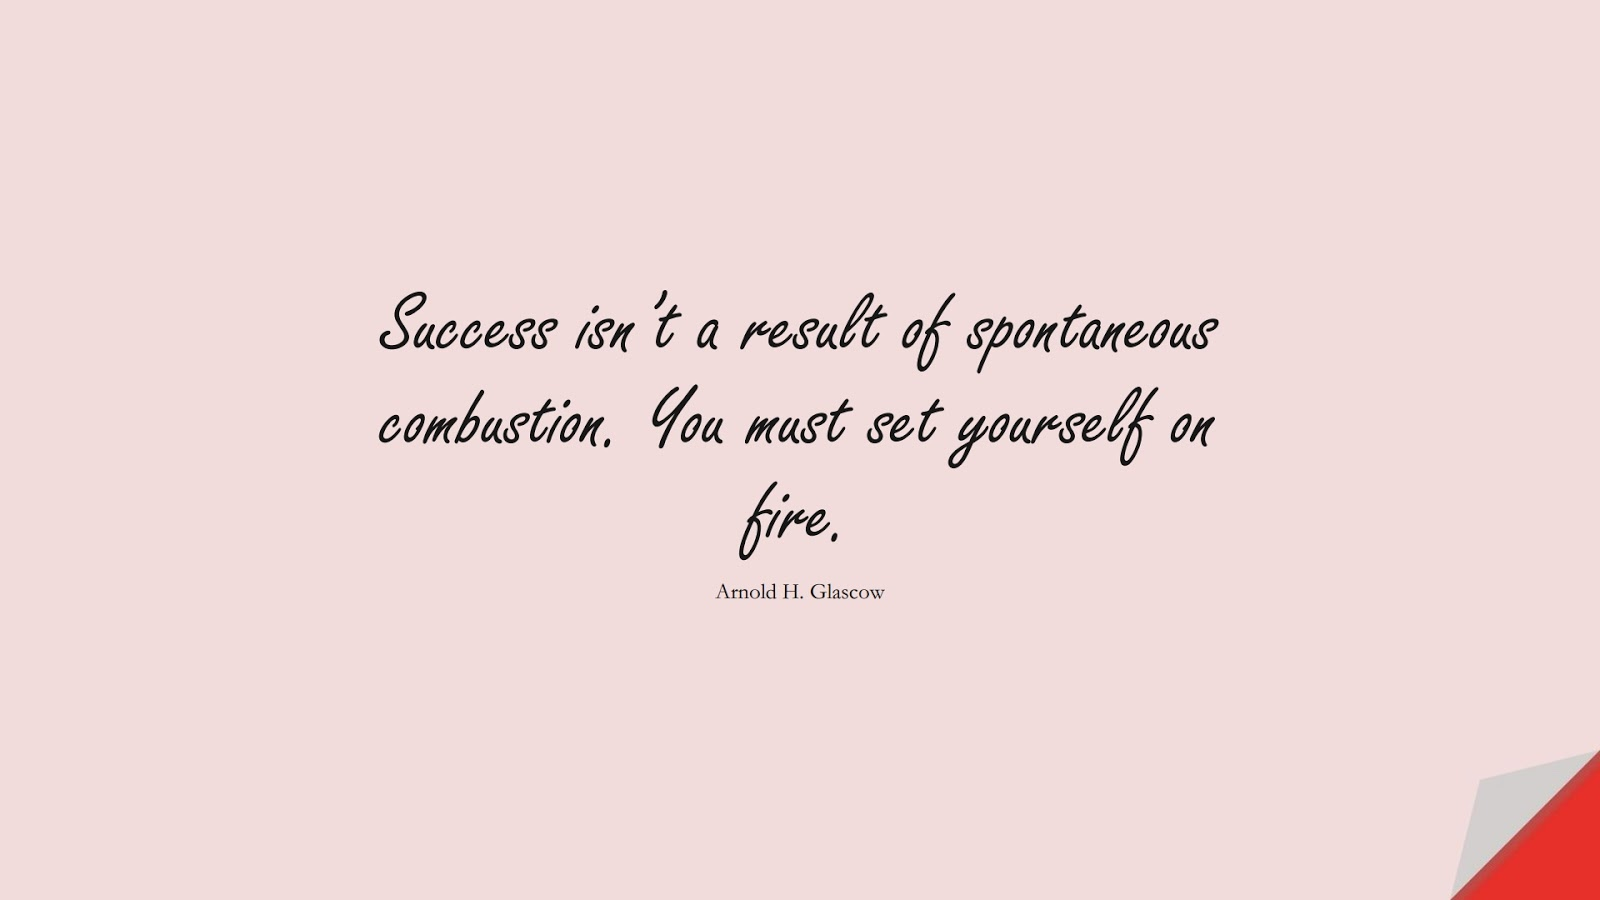 Success isn't a result of spontaneous combustion. You must set yourself on fire. (Arnold H. Glascow);  #SuccessQuotes